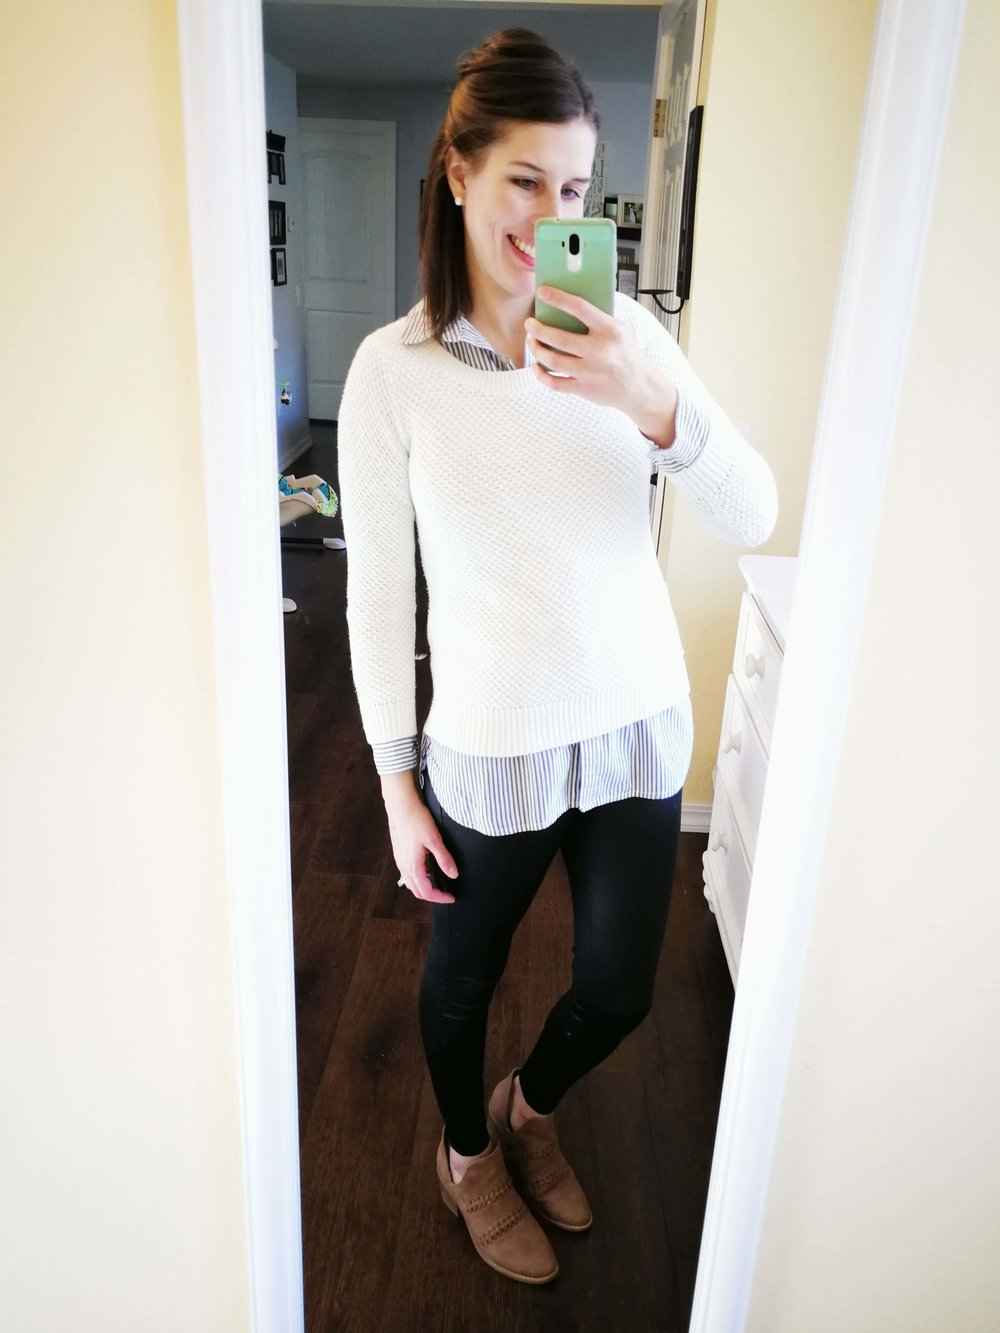 45b70b21e3a How to wear faux leather leggings. Business casual or classy errands outfit  idea for winter